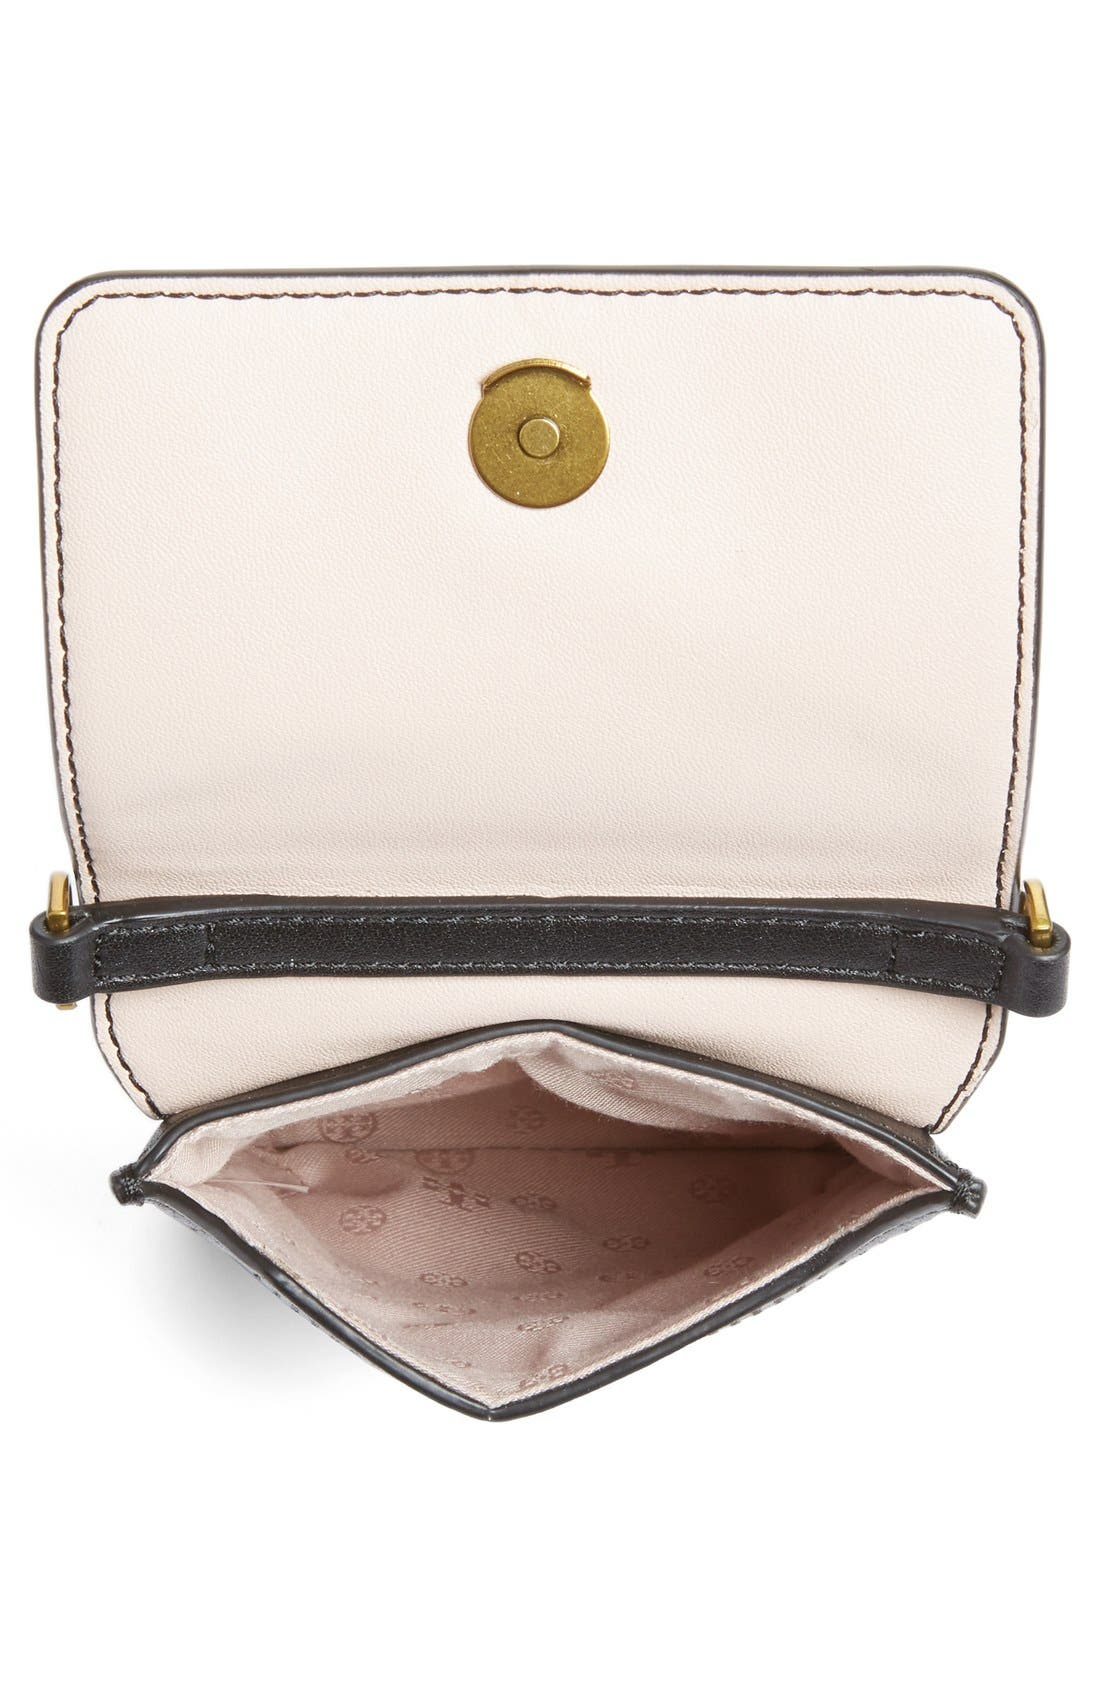 Alternate Image 3  - Tory Burch Perforated Leather Smartphone Crossbody Bag